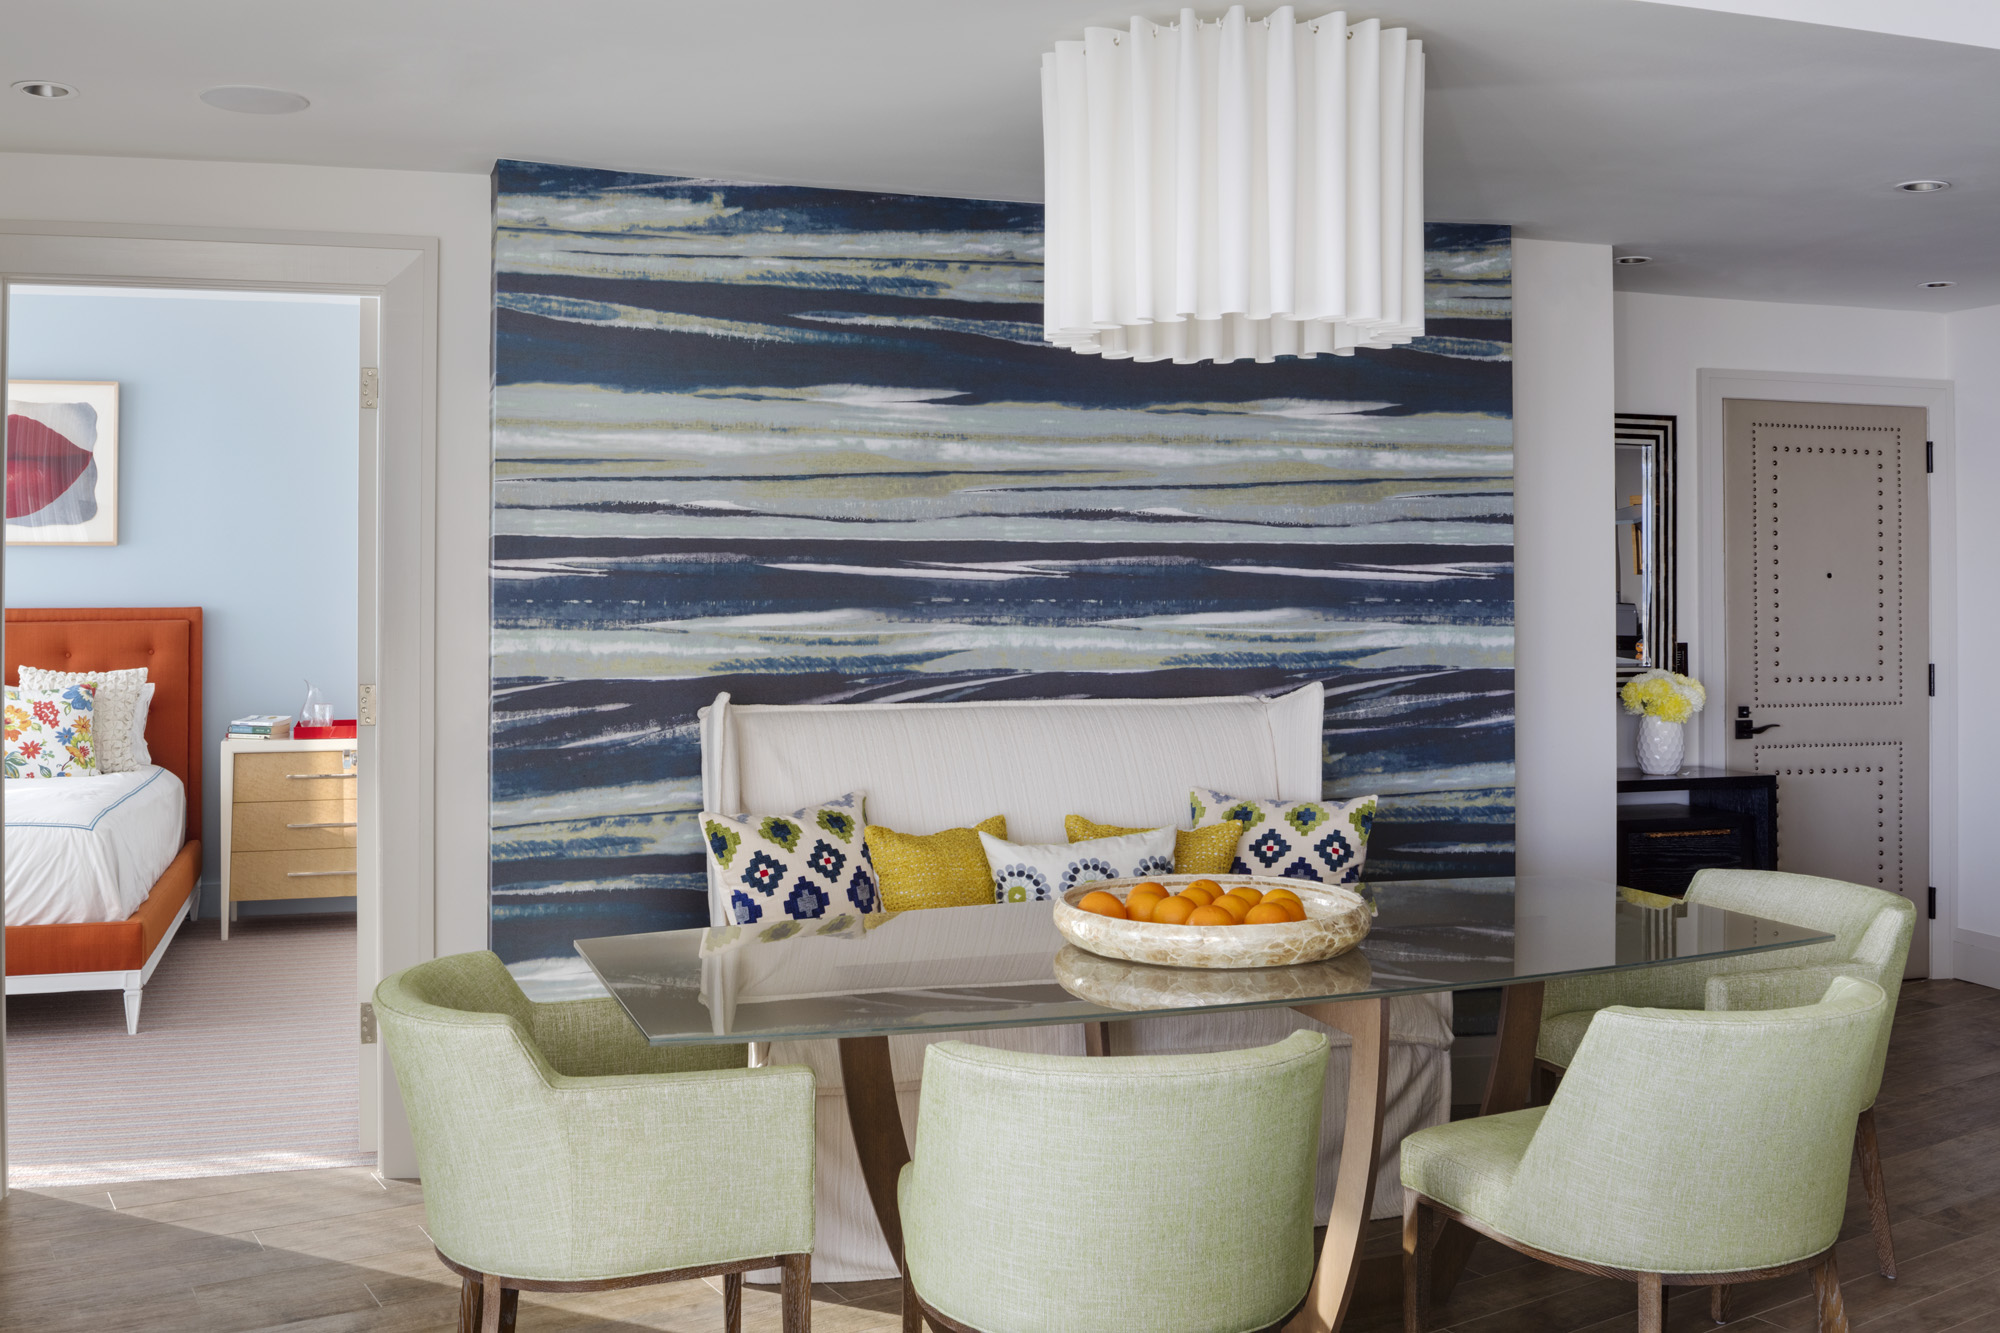 Boston-based LDa Architecture & Interiors used contemporary furnishings and vibrant color accents to update this beachfront vacation condo in Miami.